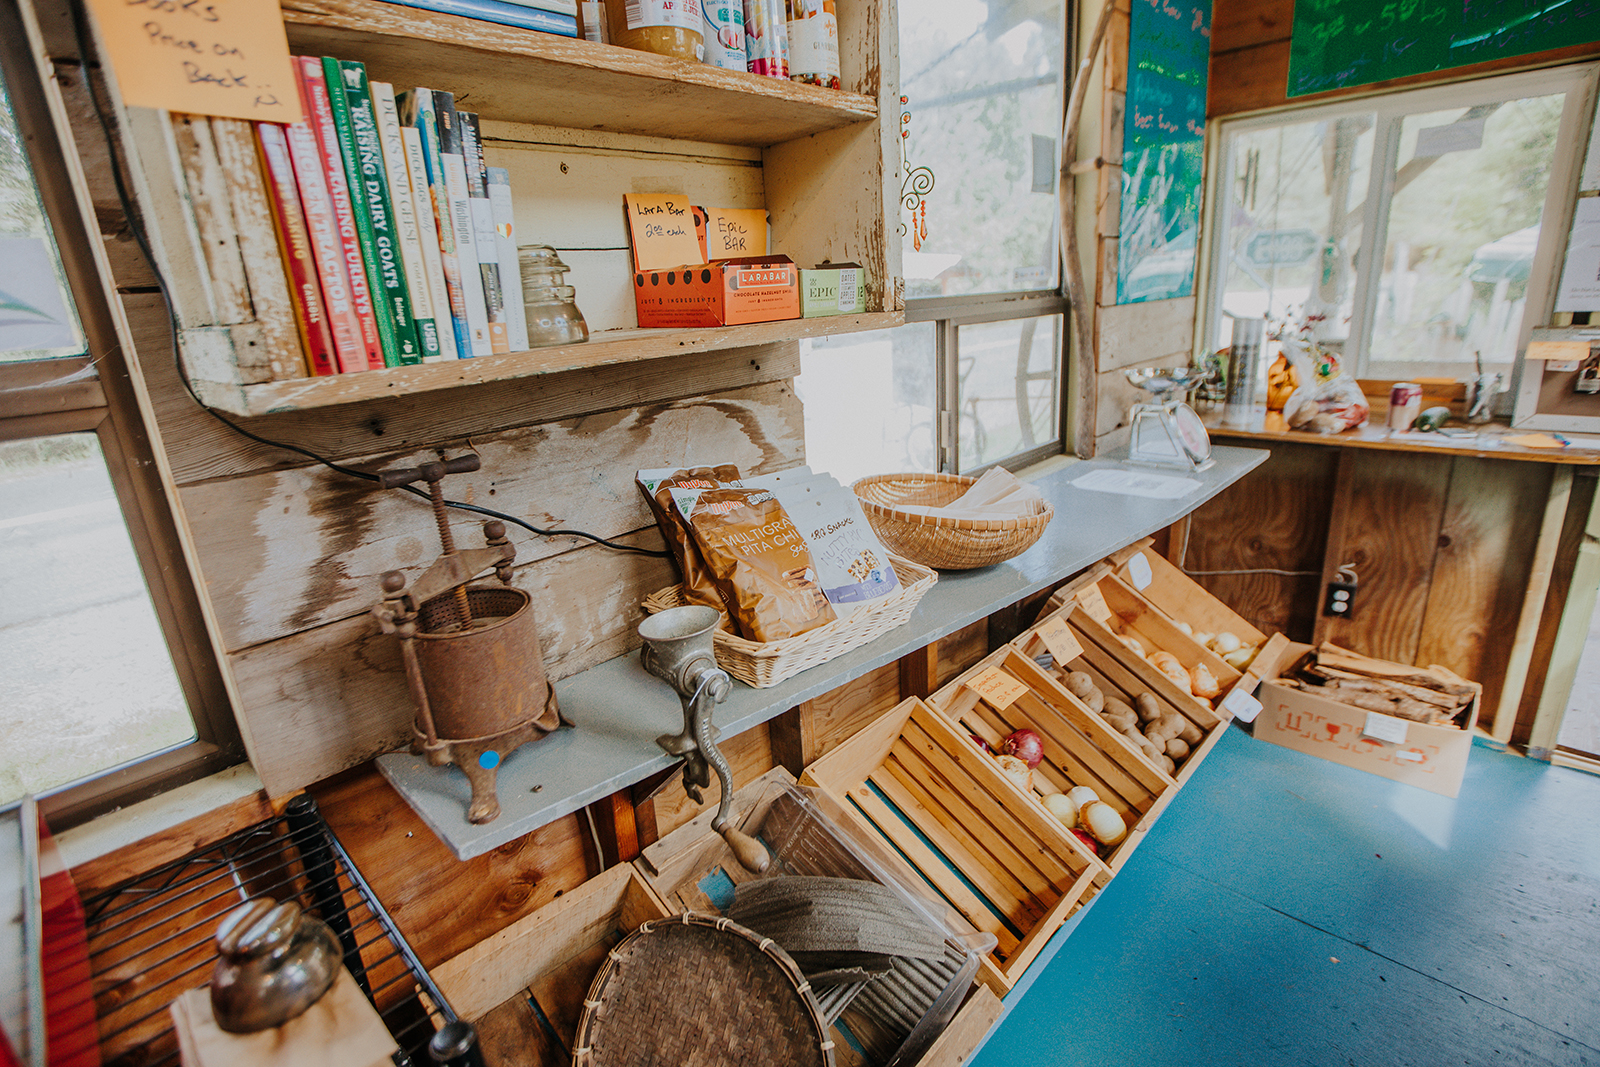 Dried goods, books and produce rest on the shelves of the farm stand.